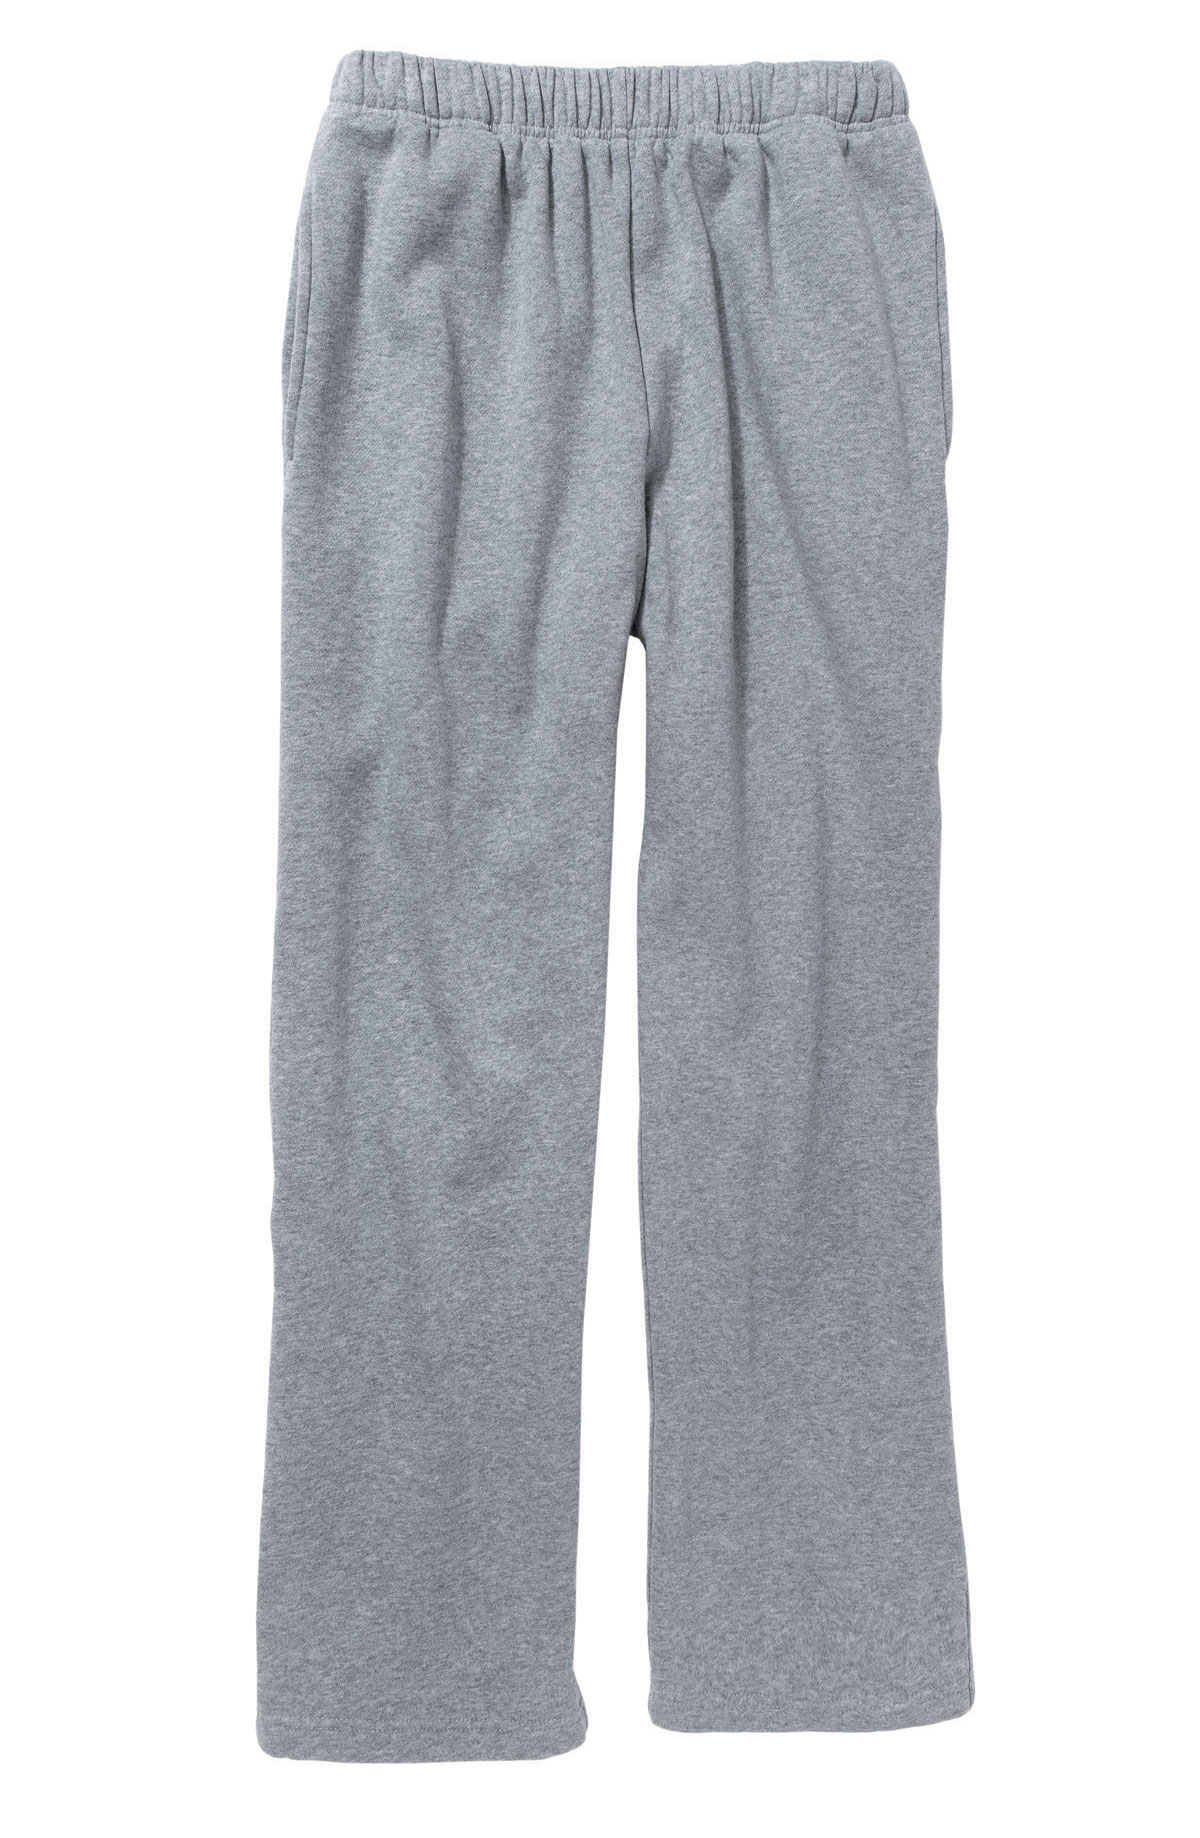 Adult Spirit Sweatpants   by Charles River Apparel